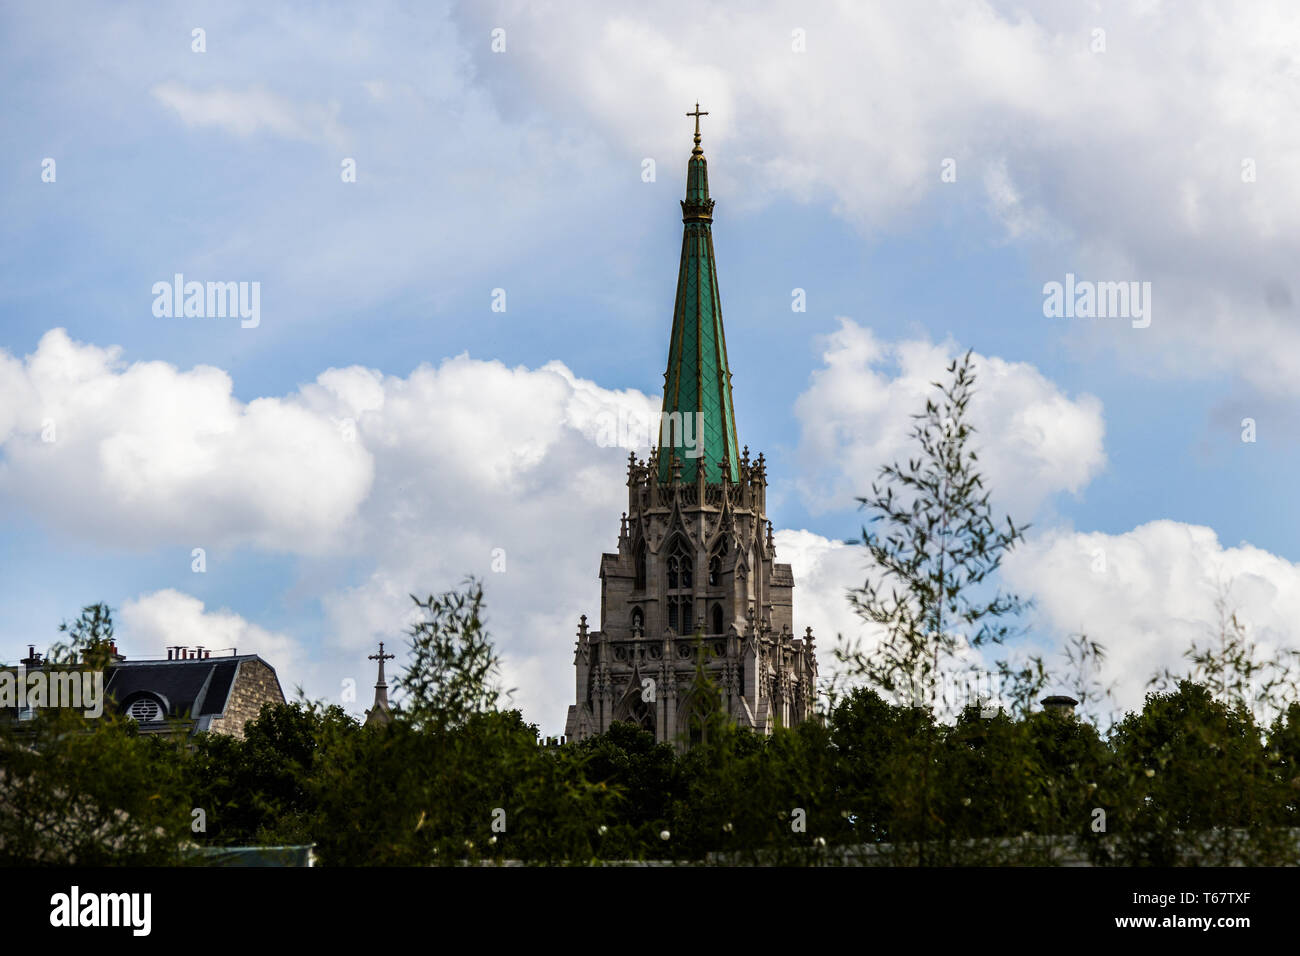 The American Church in Paris, France Stock Photo